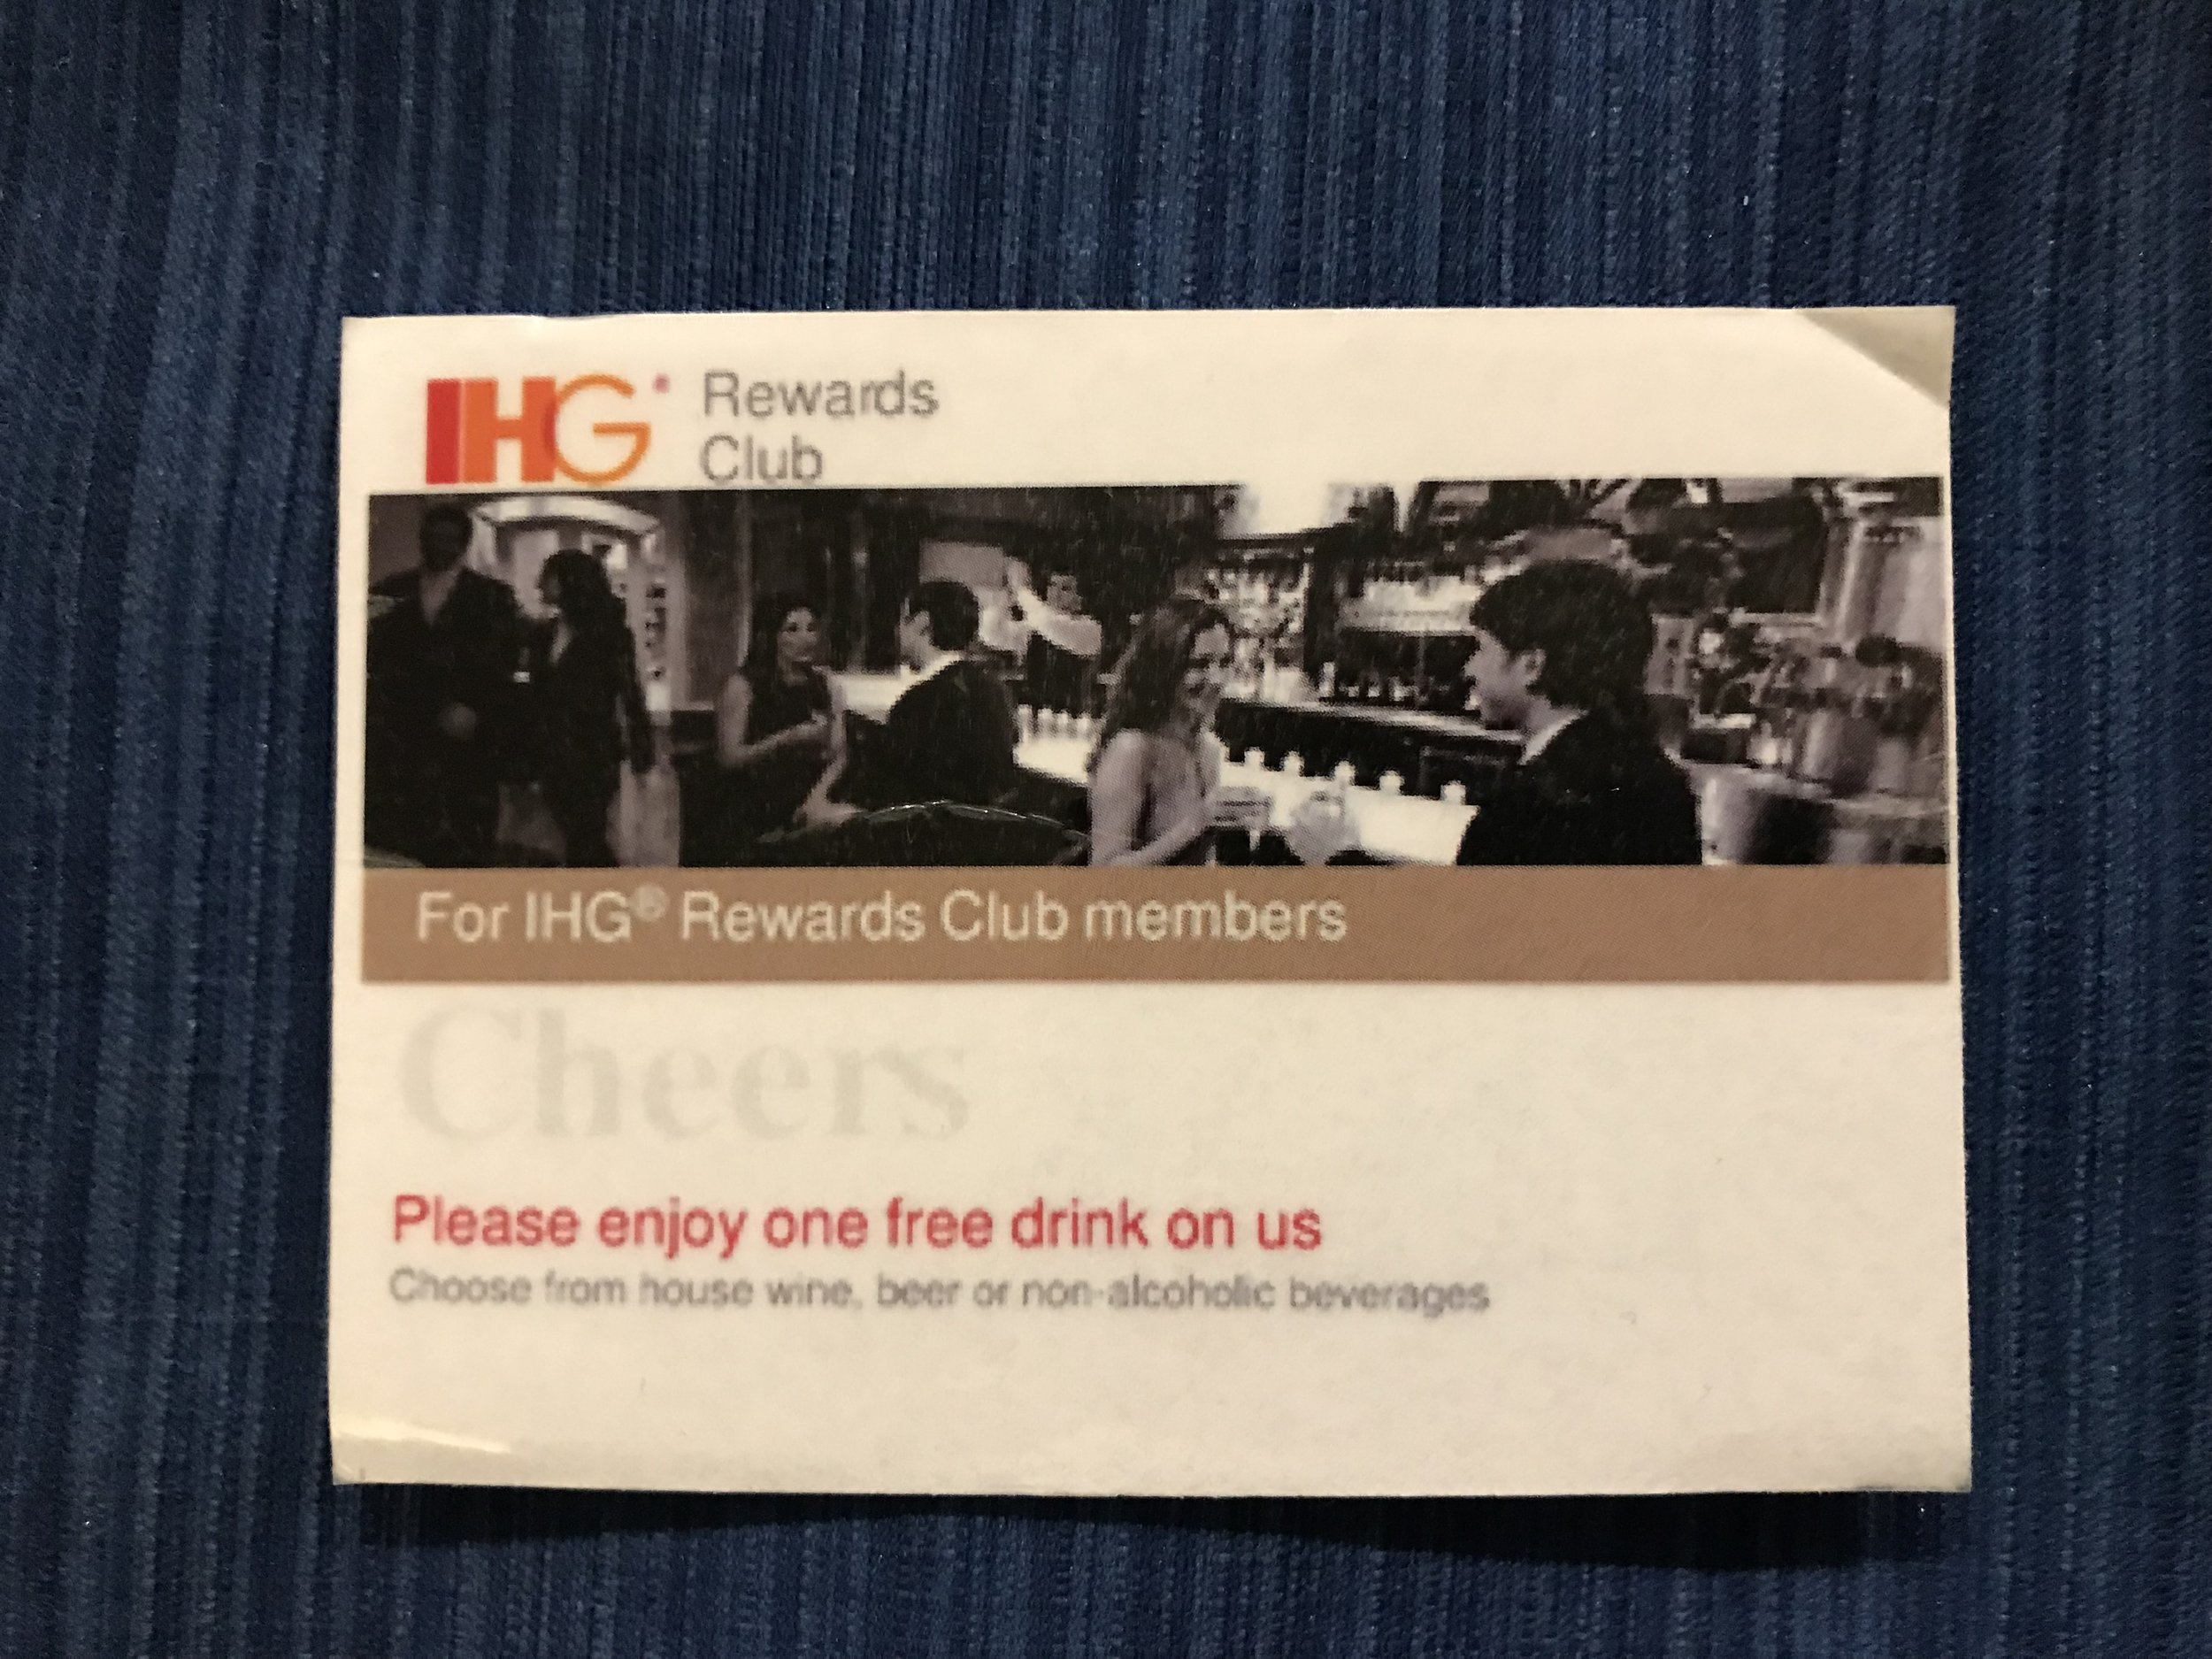 One free drink of a glass of wine, beer on draught or soft drinks, a benefit of being an IHG Rewards Club member.